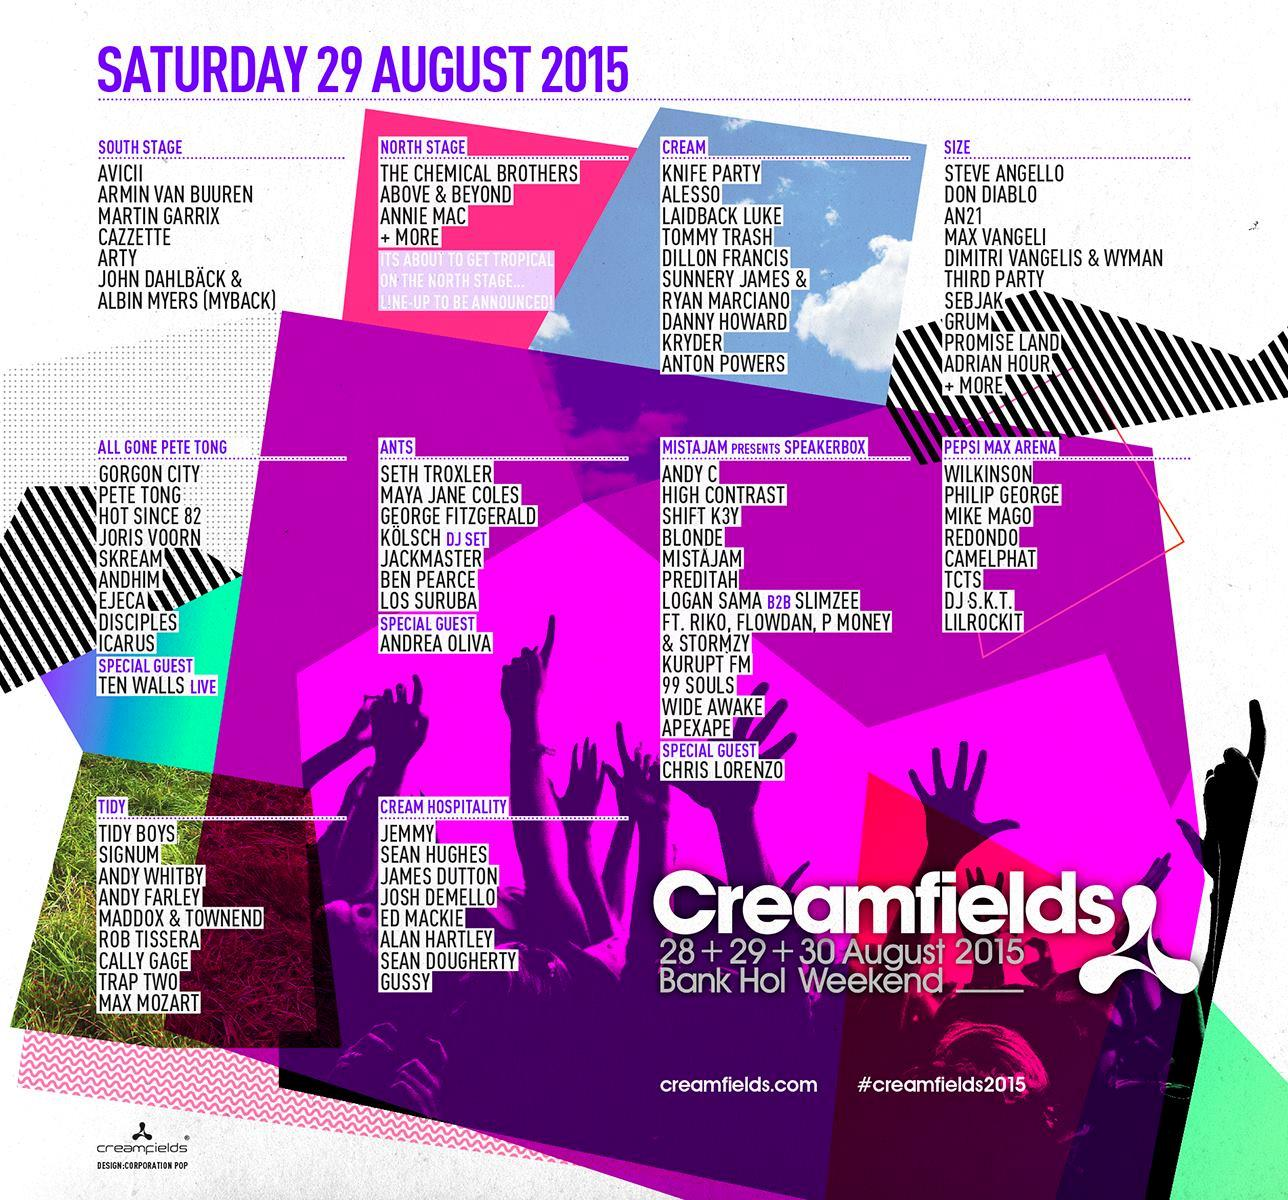 Creamfields 2015 Saturday